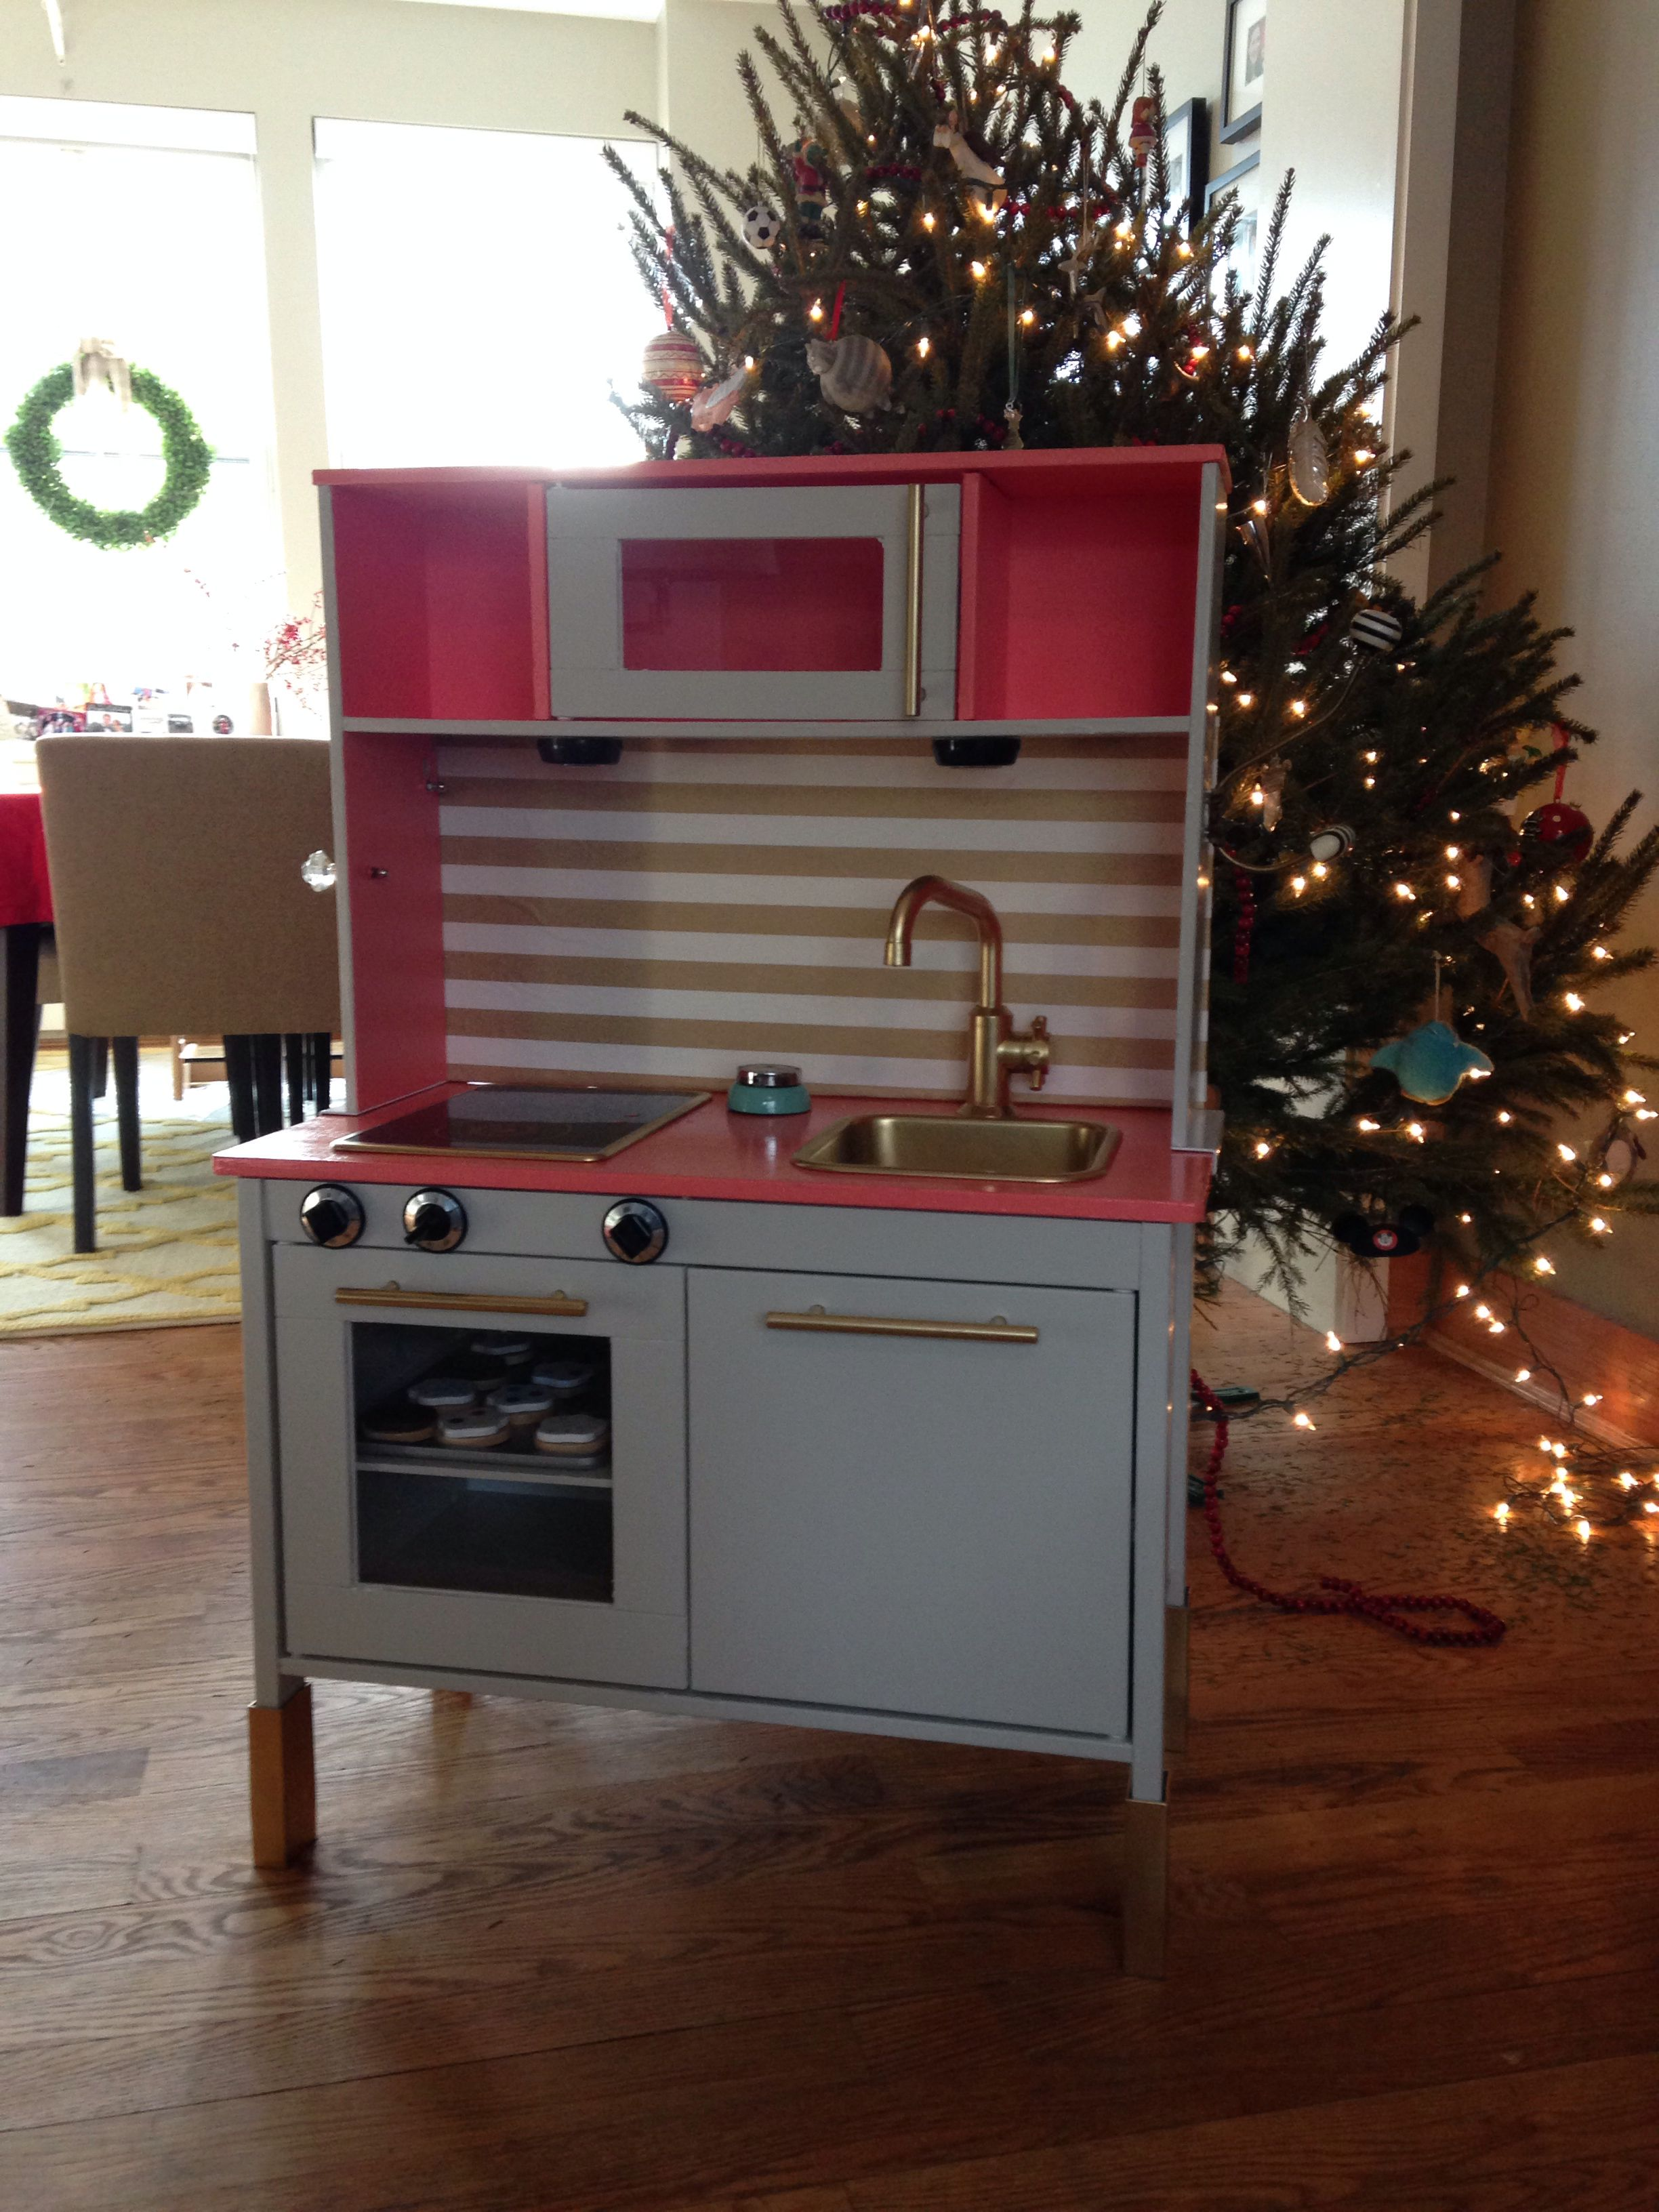 ikea duktig play kitchen hack emma xmas 2013 emma 39 s. Black Bedroom Furniture Sets. Home Design Ideas